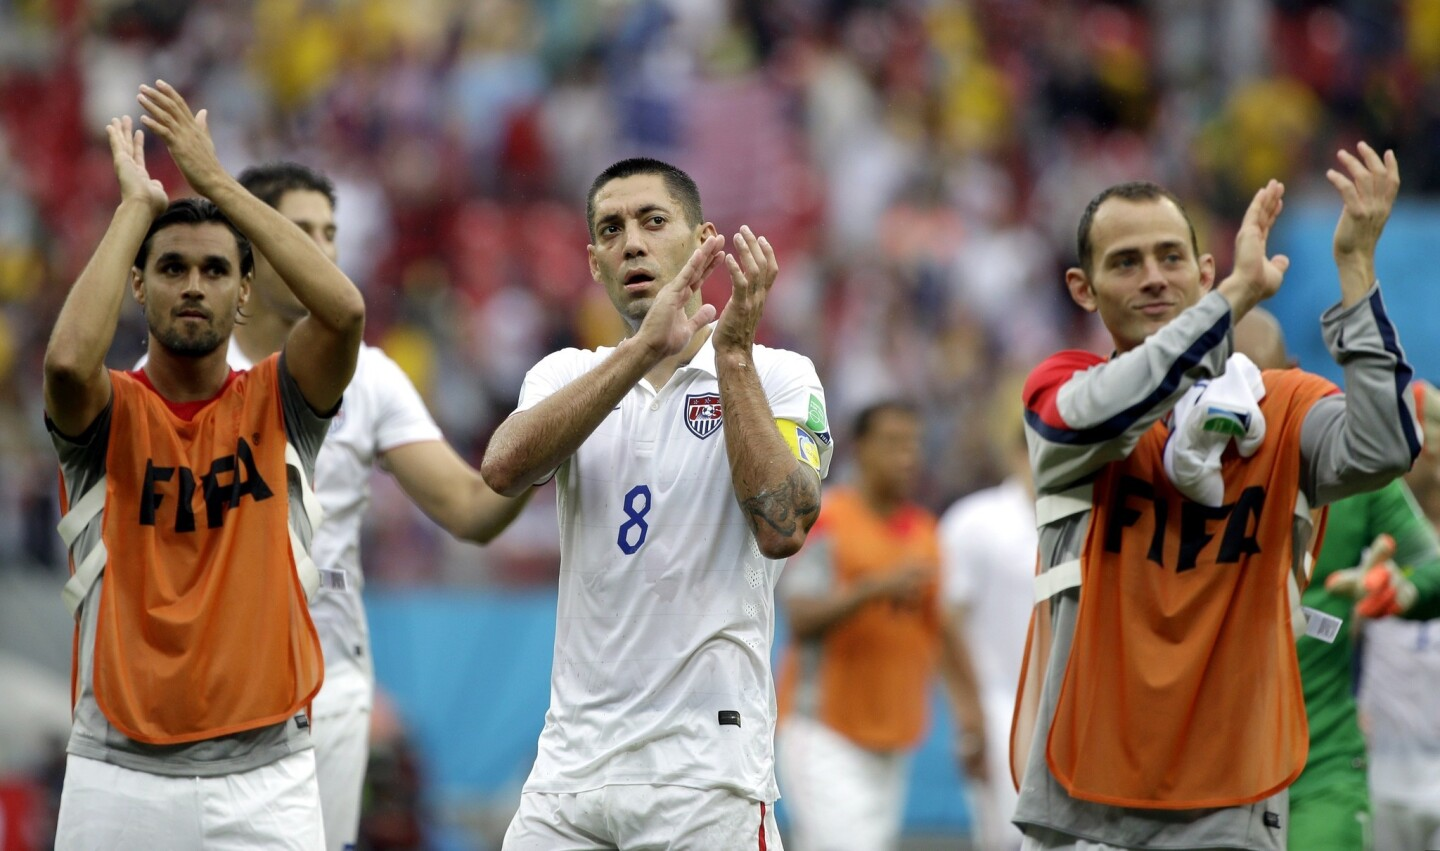 U.S. forward Clint Dempsey, center, celebrates with his teammates after advancing to the Round of 16 at the World Cup. The U.S. advanced despite the team's 1-0 loss to Germany in their final match of Group G play.